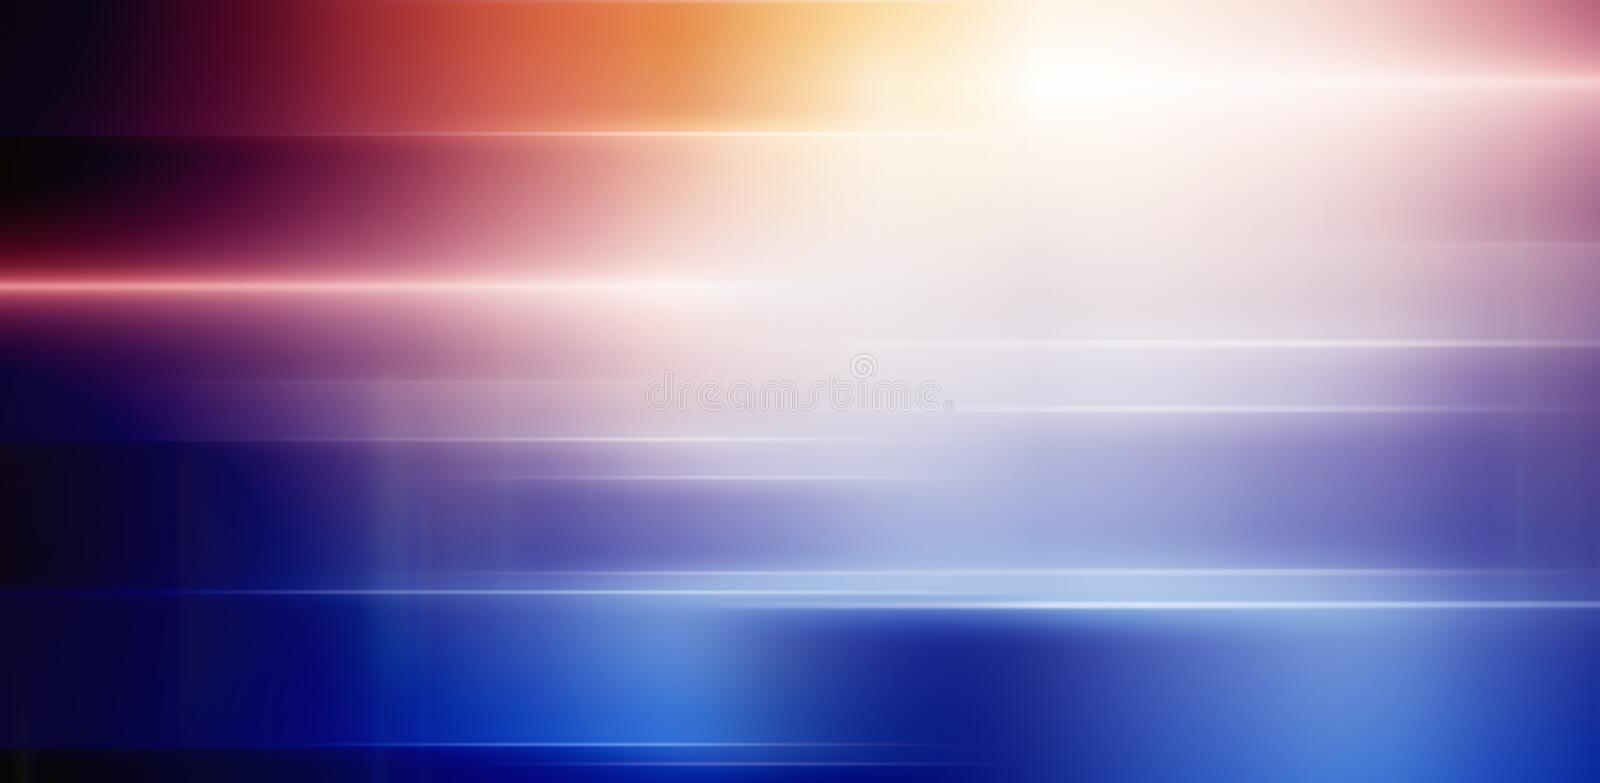 Glow lights. Abstract background - colored glowing light royalty free illustration